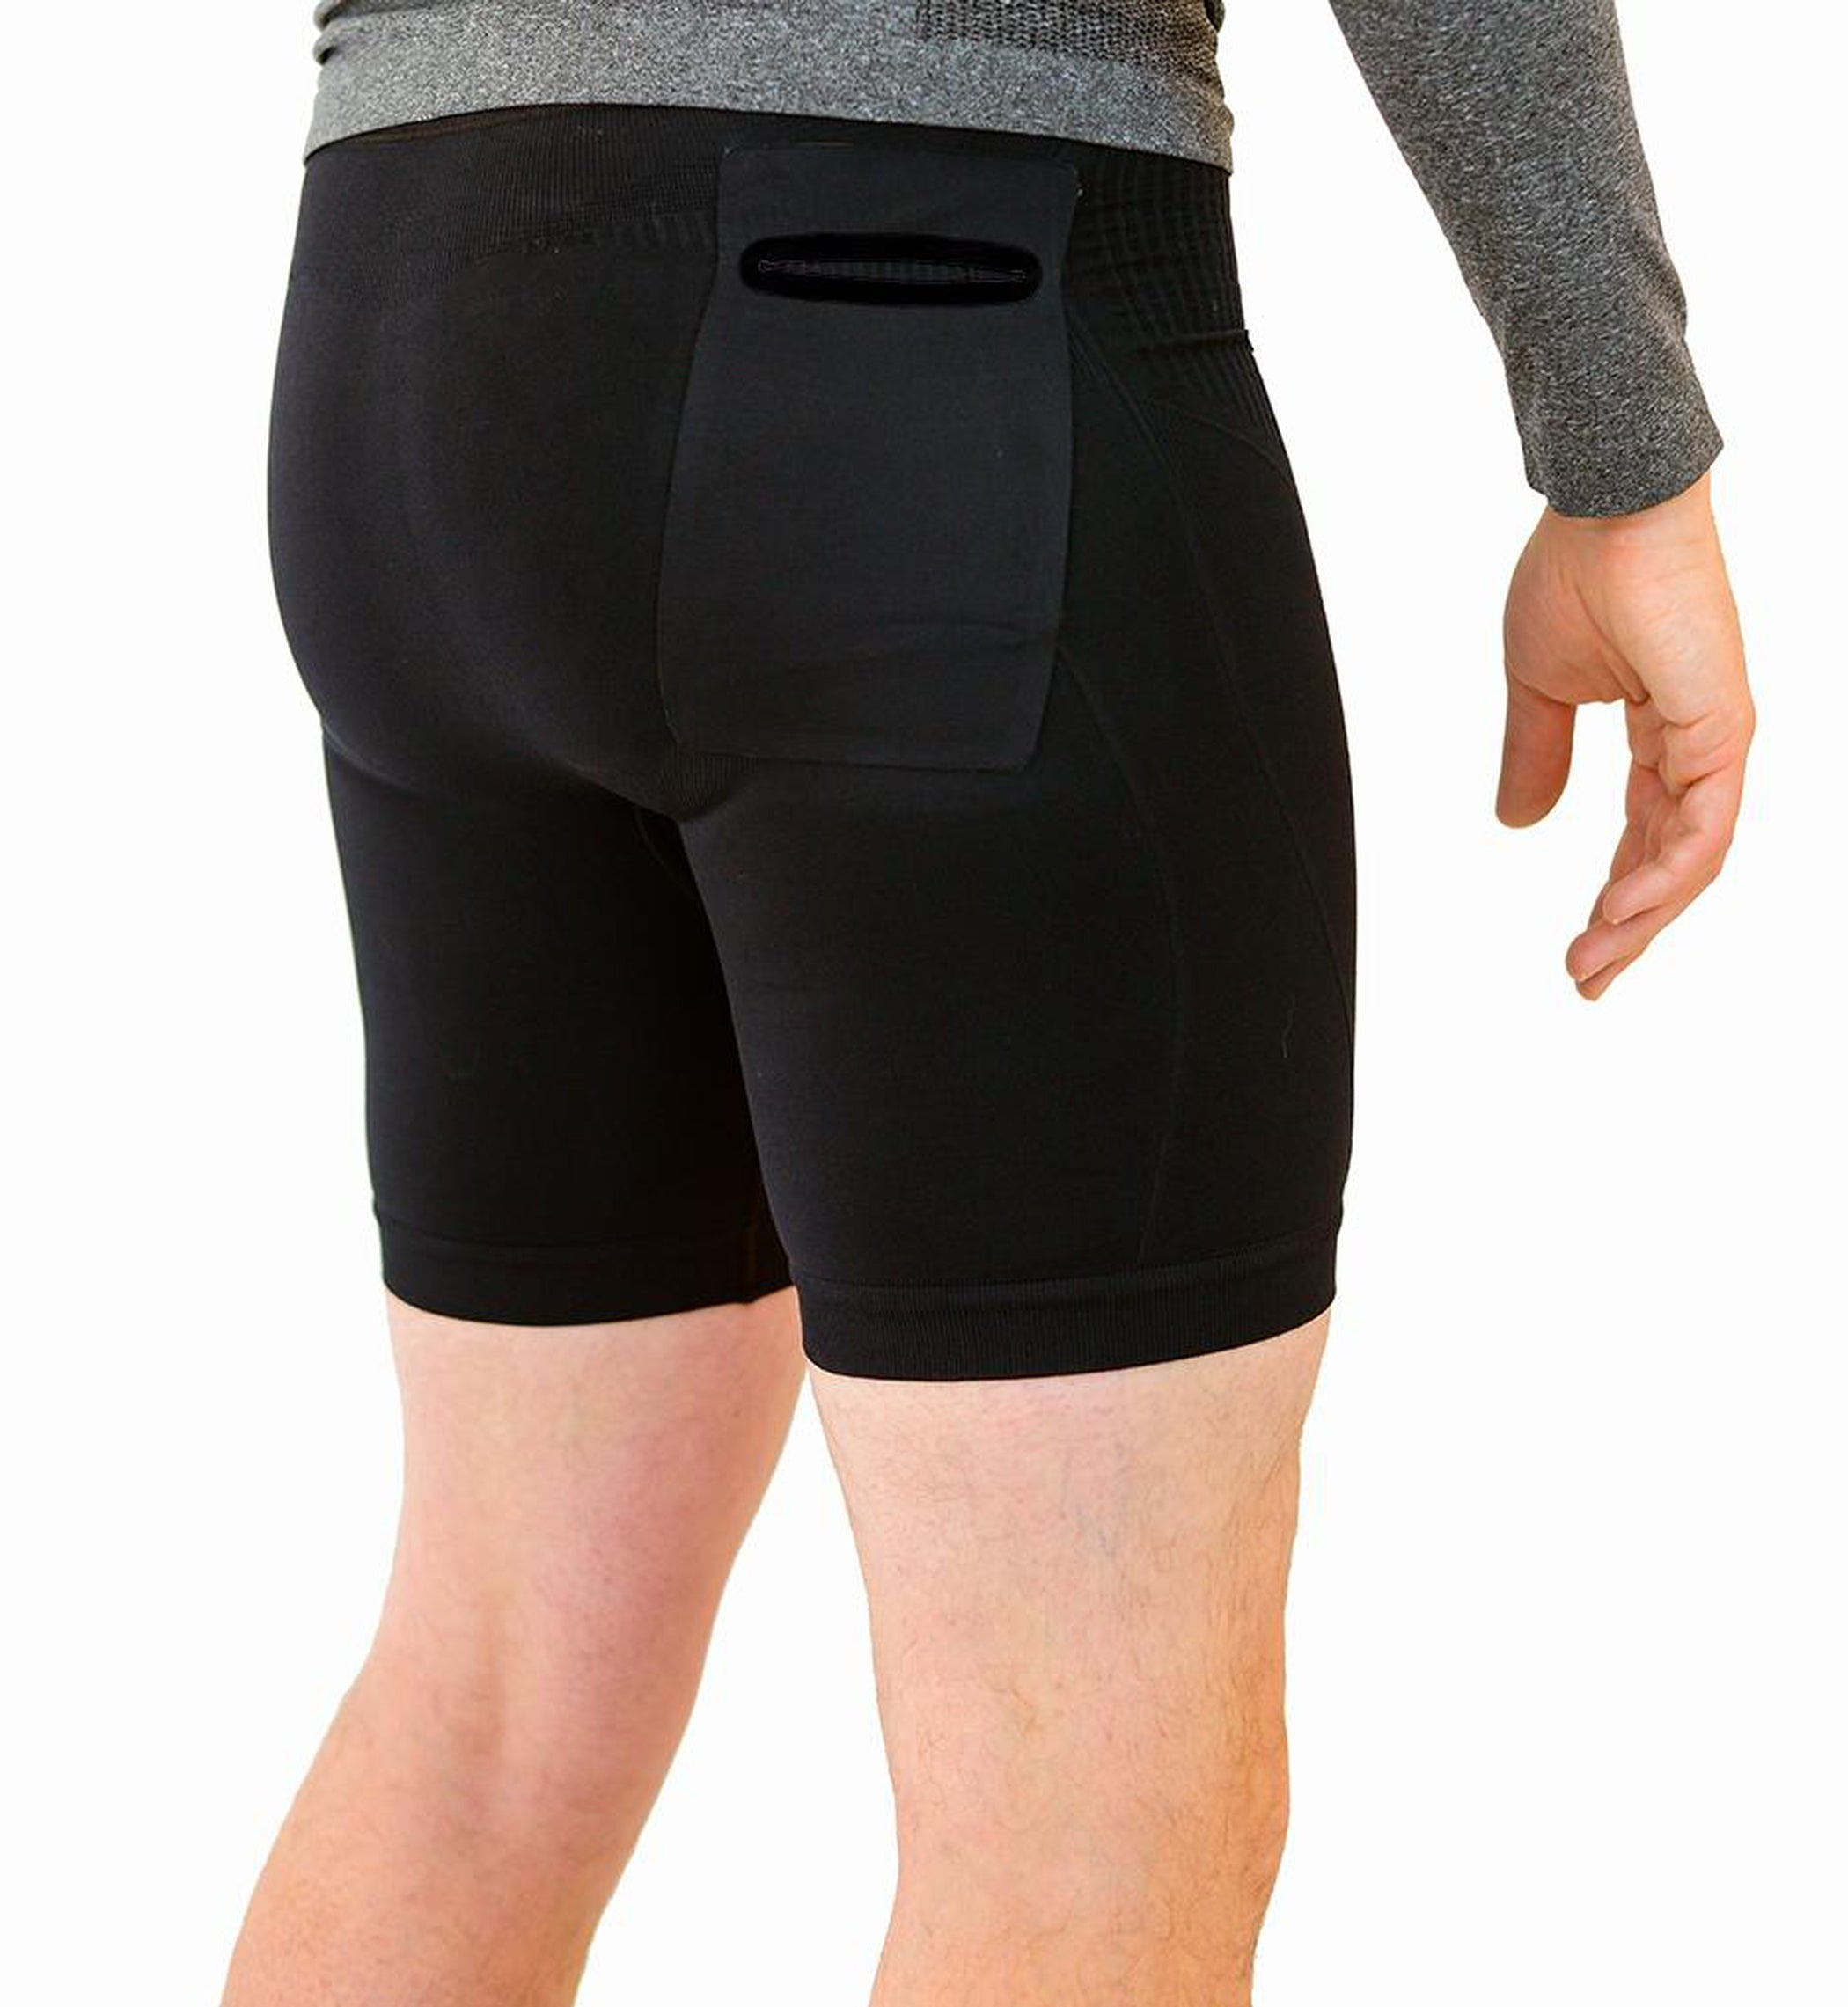 Black compression shorts with patented fully seamless front, pockets and a 6 inch inseam. Back View.